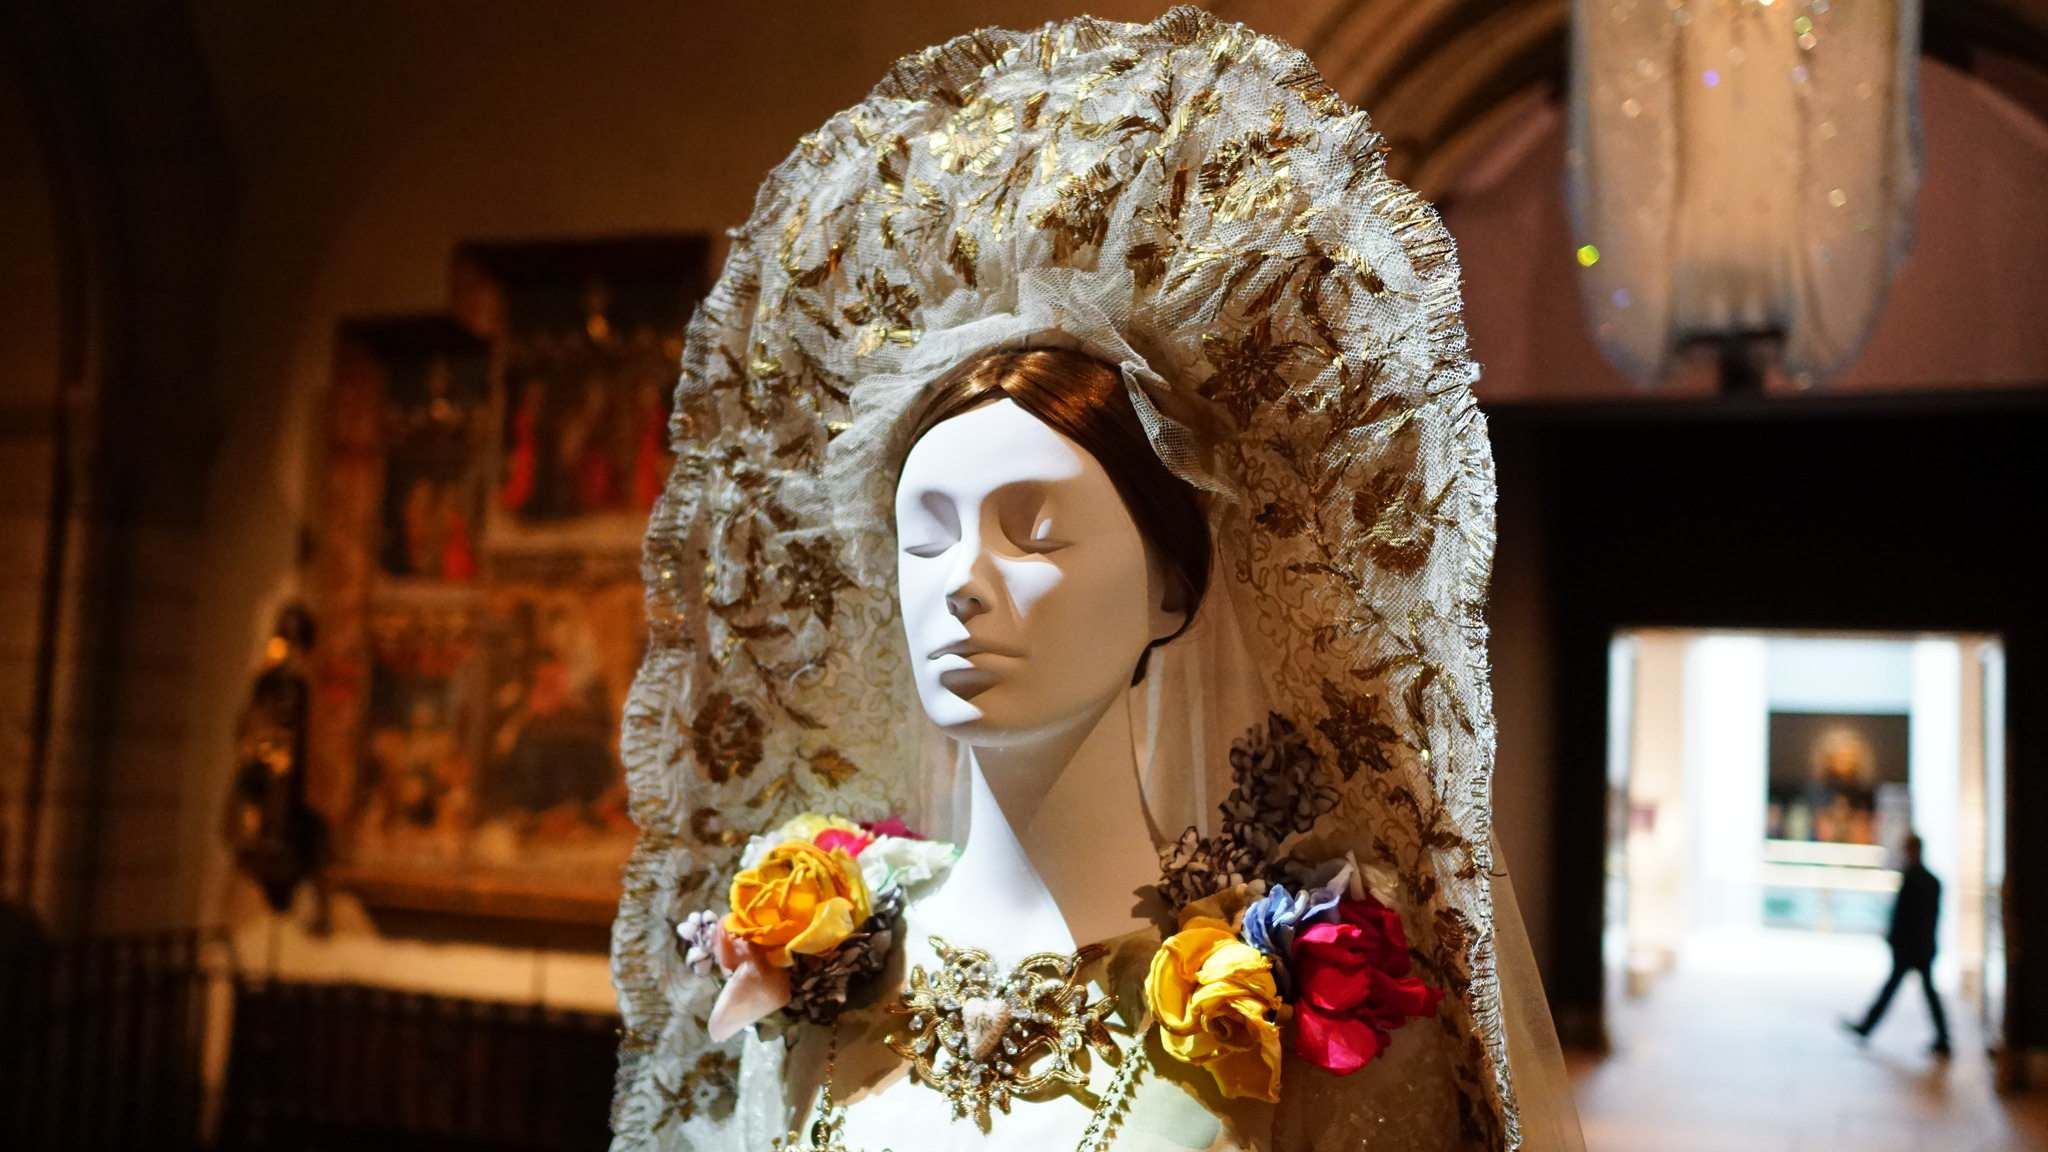 heavenly bodies3 Heavenly Bodies: Fashion and the Catholic Imagination in MET